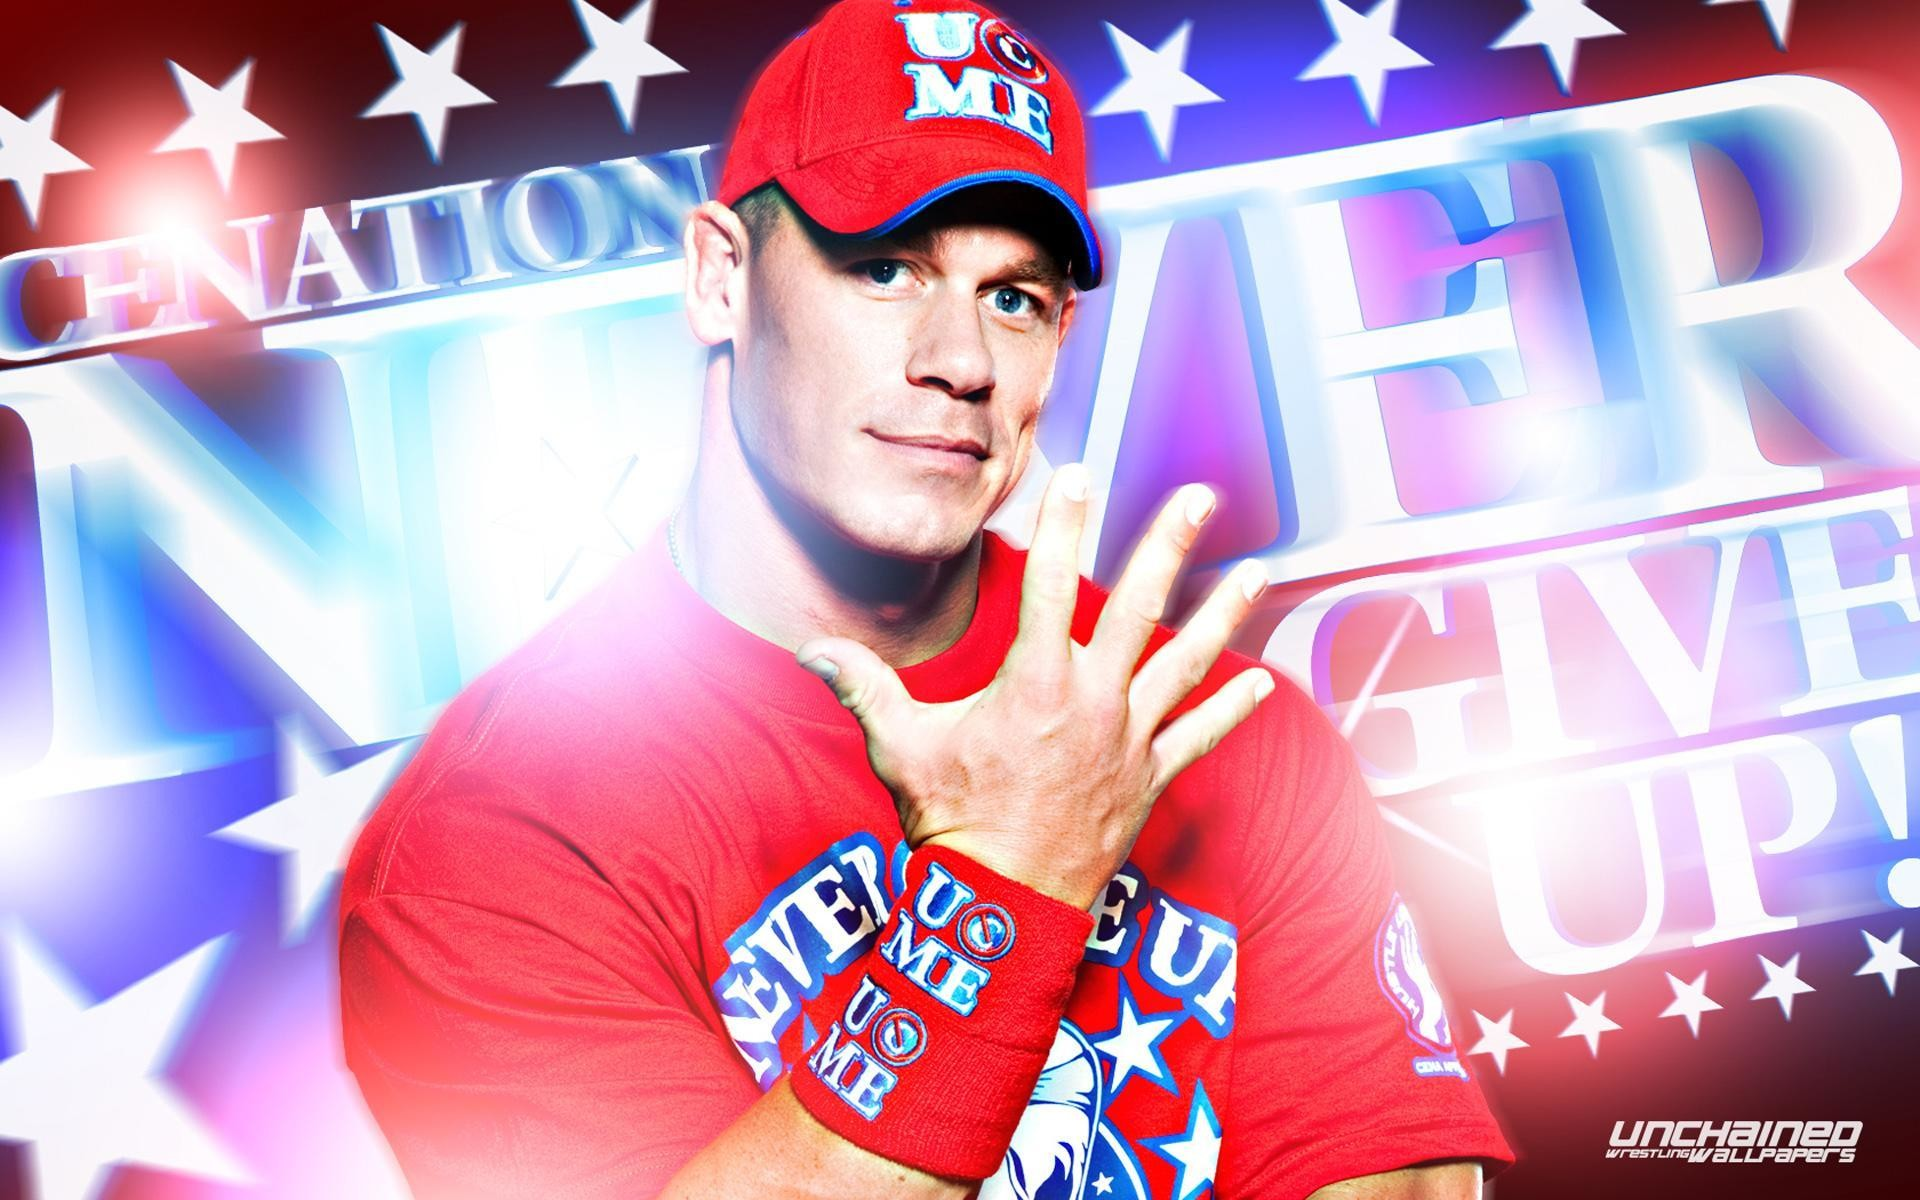 Johncena Hd Wallpapers 2018 55 Pictures